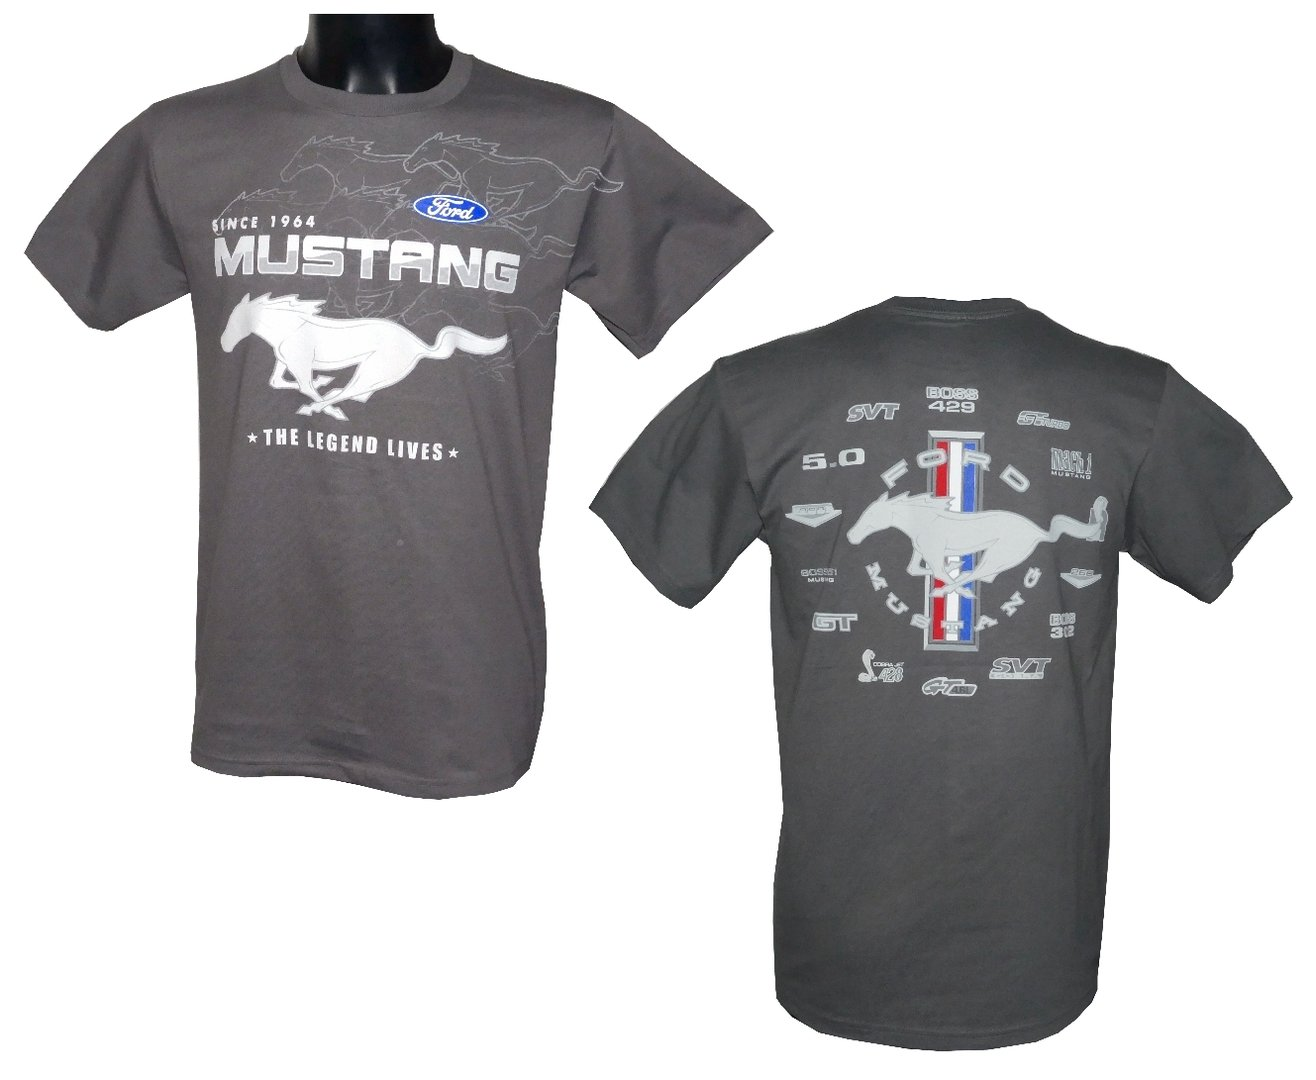 mustang t shirt collage grau us car und nascar. Black Bedroom Furniture Sets. Home Design Ideas